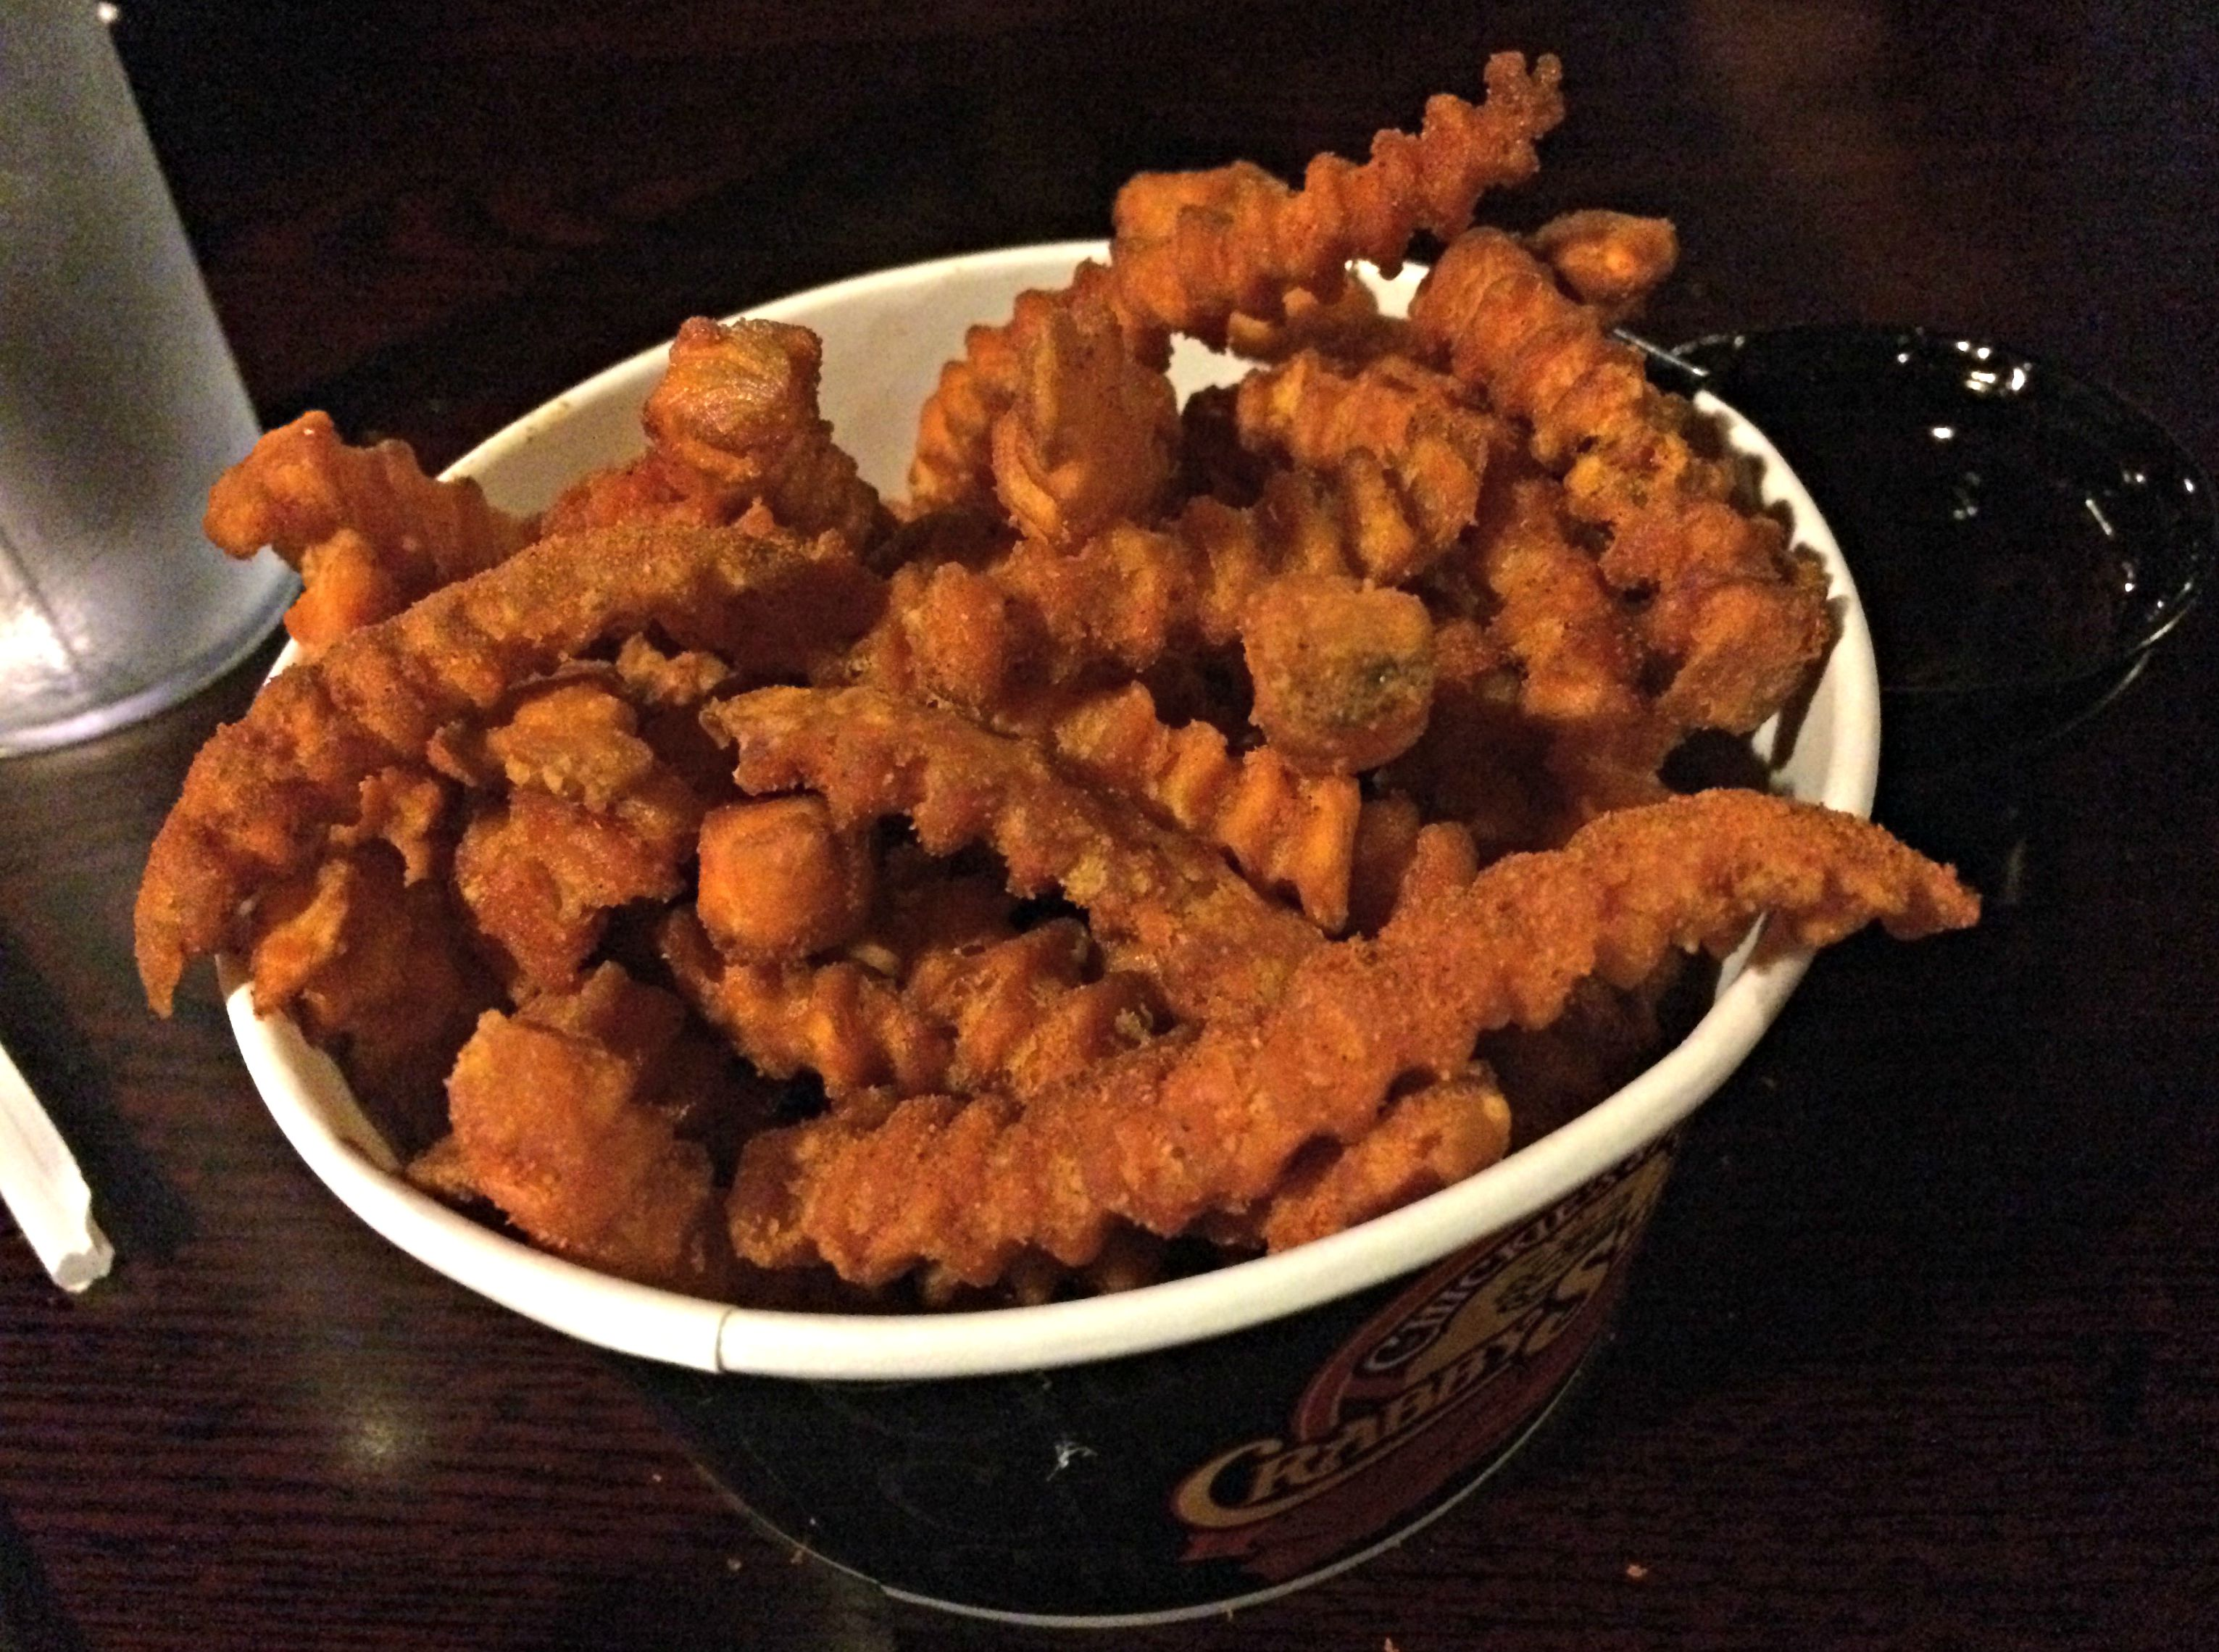 chickie's & pete's cedar point crabby sweets fries